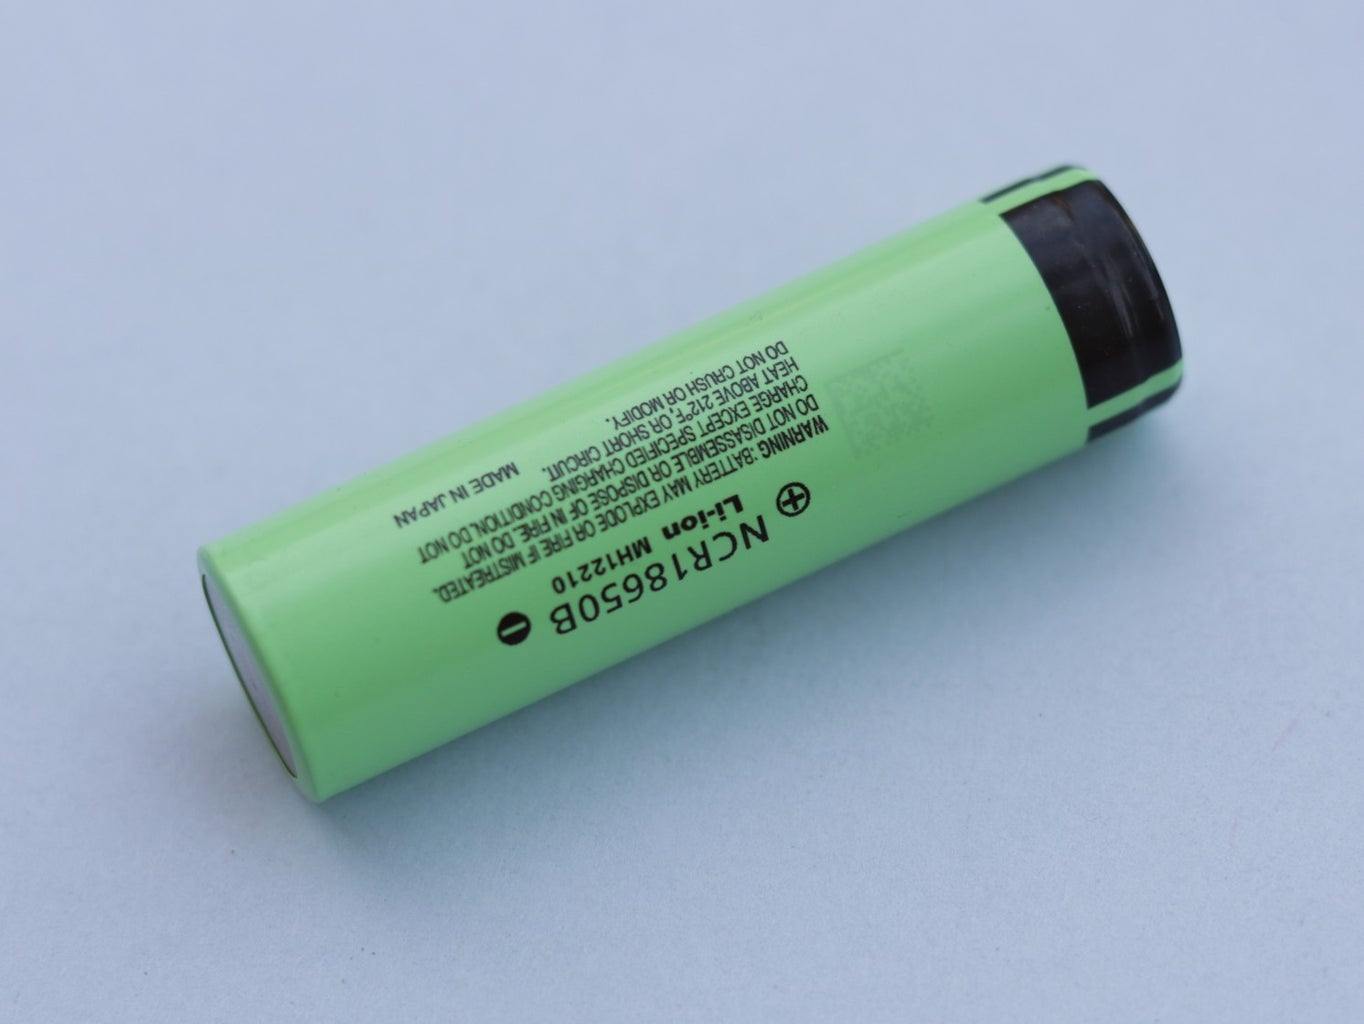 Selecting the Battery